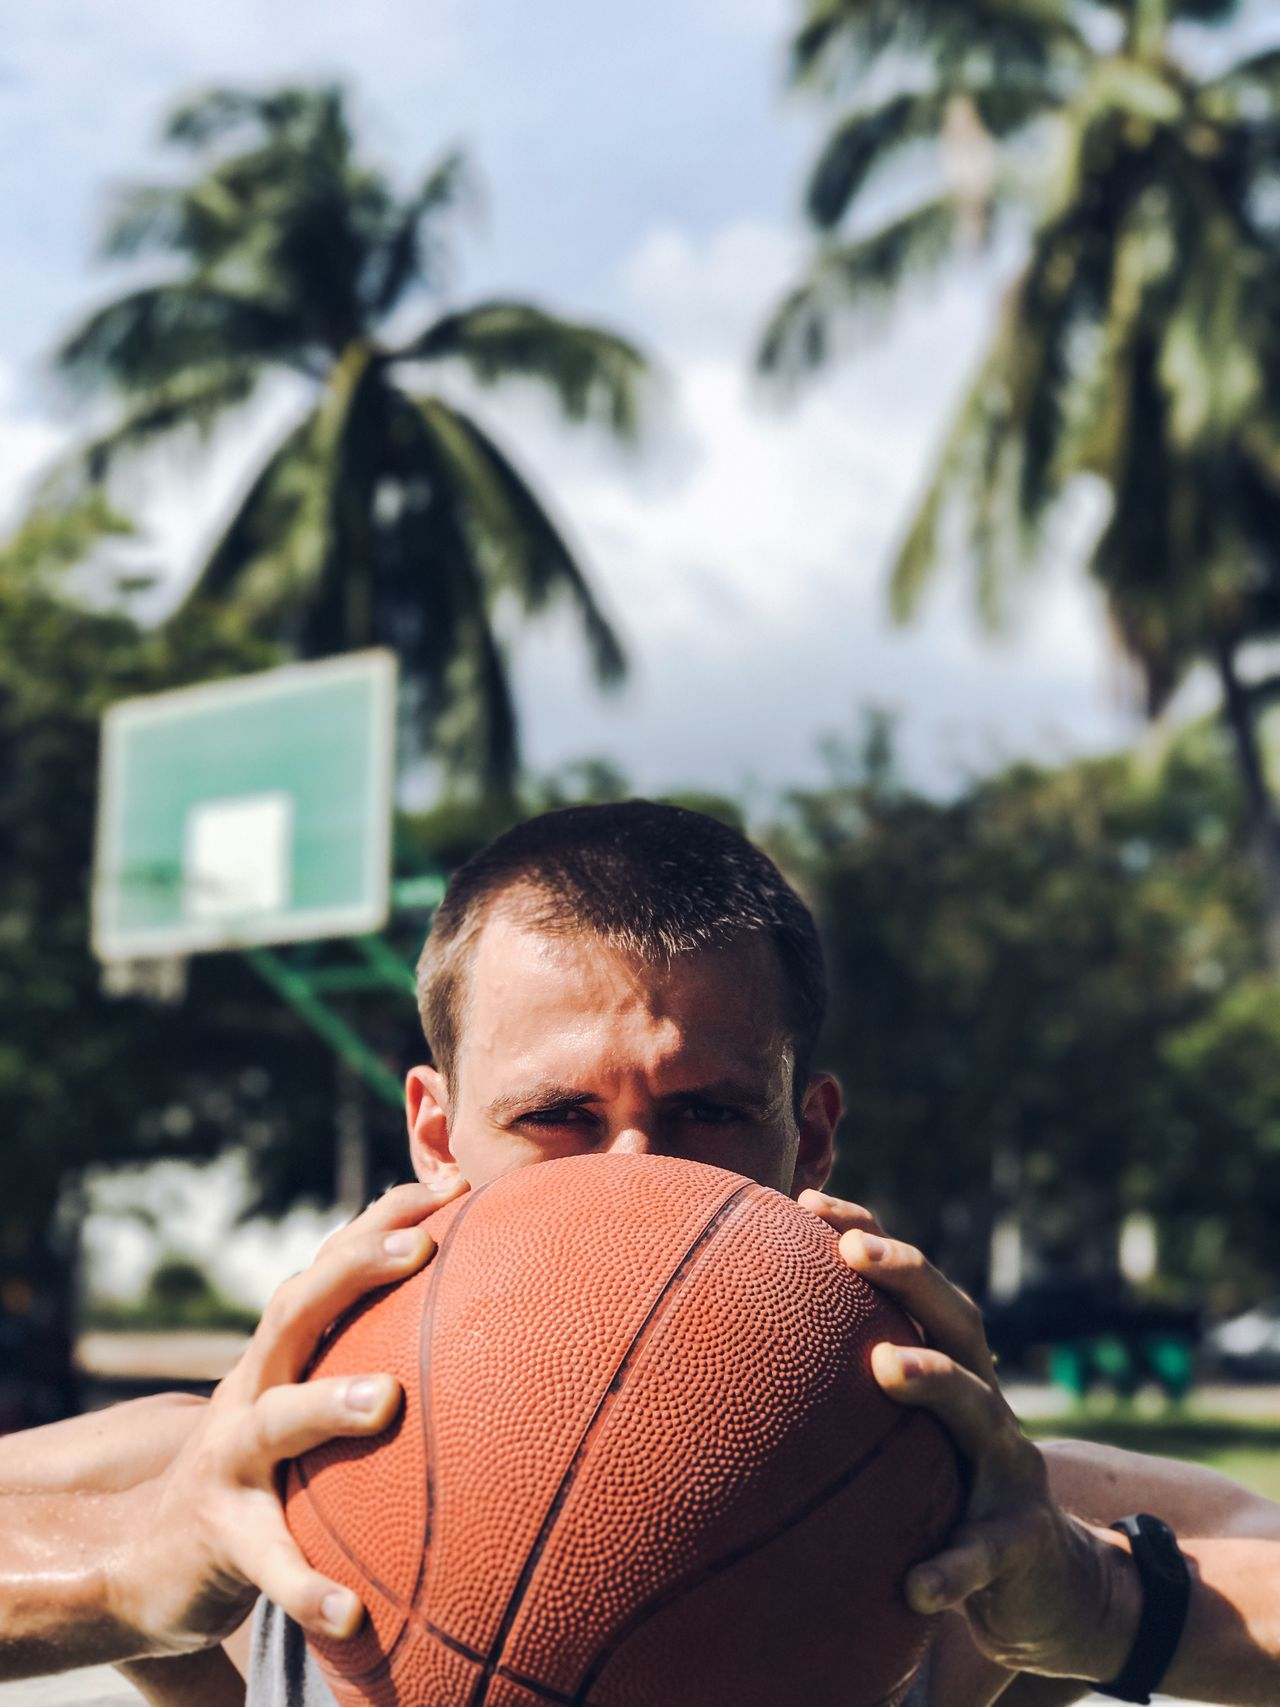 Adult Adults Only Ball Basketball - Sport Basketball Court Basketball Player Close-up Day Front View Headshot Healthy Lifestyle Holding One Man Only One Person Only Men Outdoor Activity Outdoors Palm Tree People Playing Sport Sports Sportsman Tree Young Adult